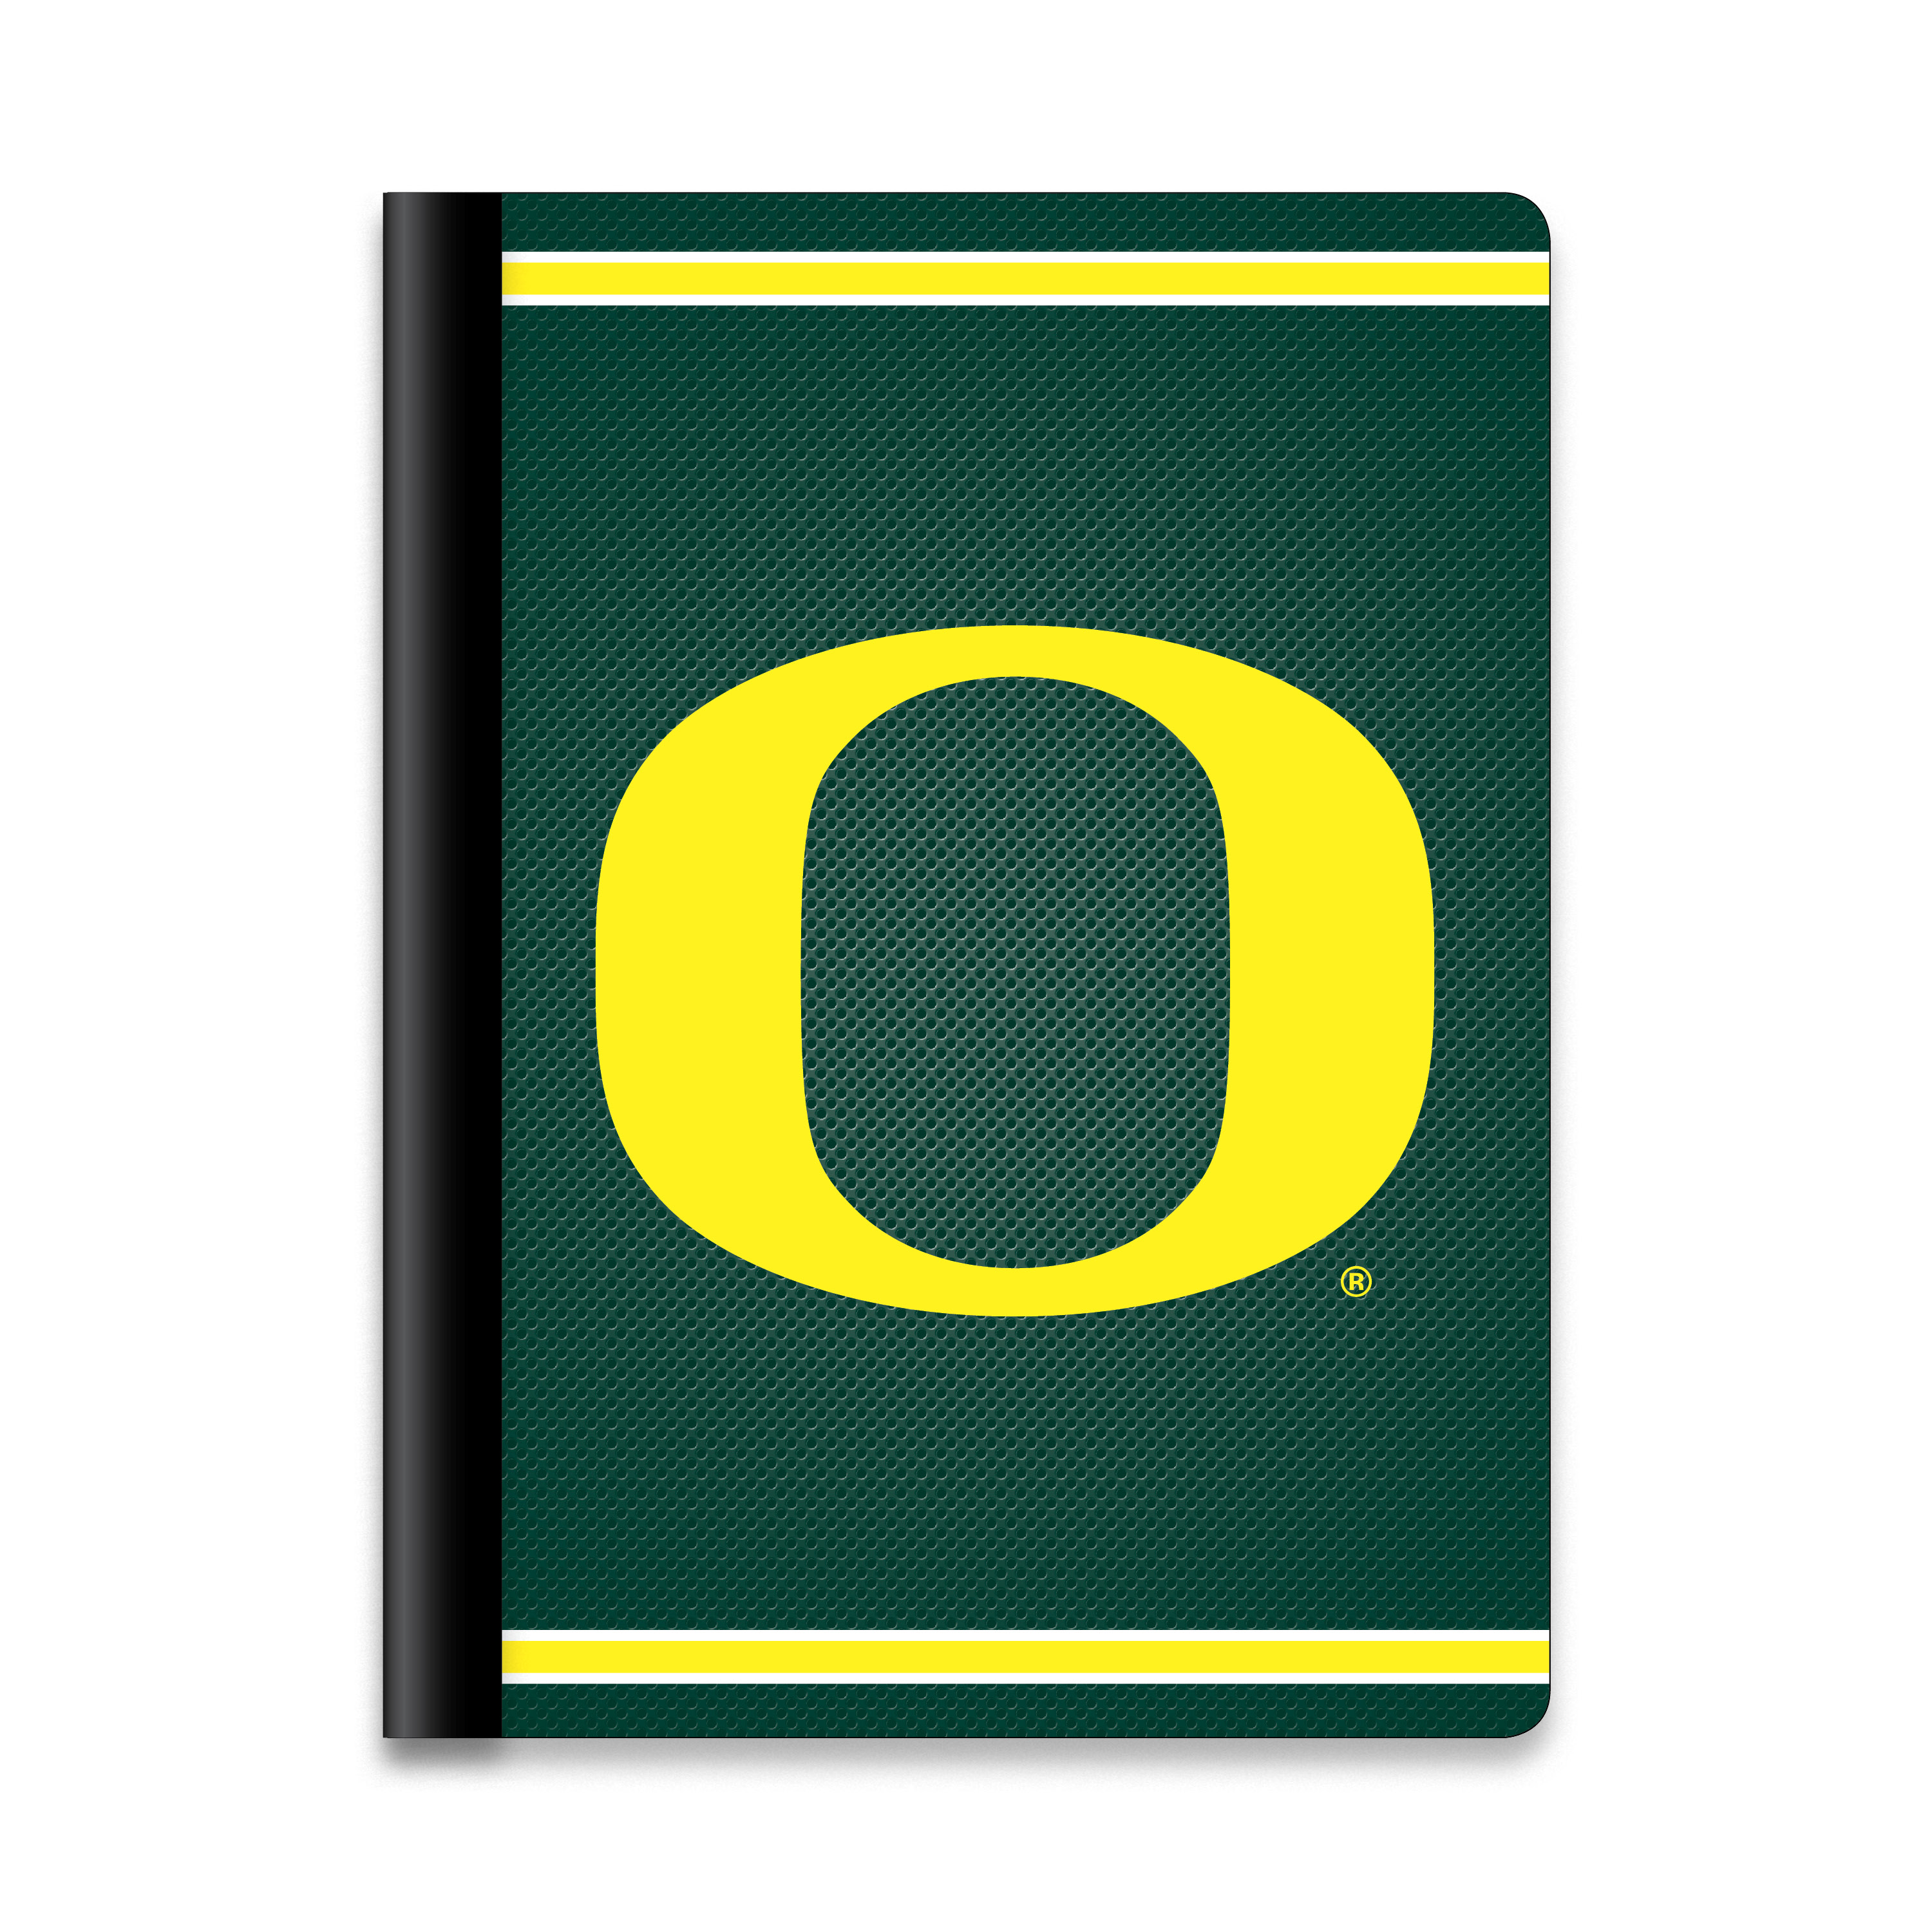 OR DUCKS CLASSIC COMPOSITION BOOK